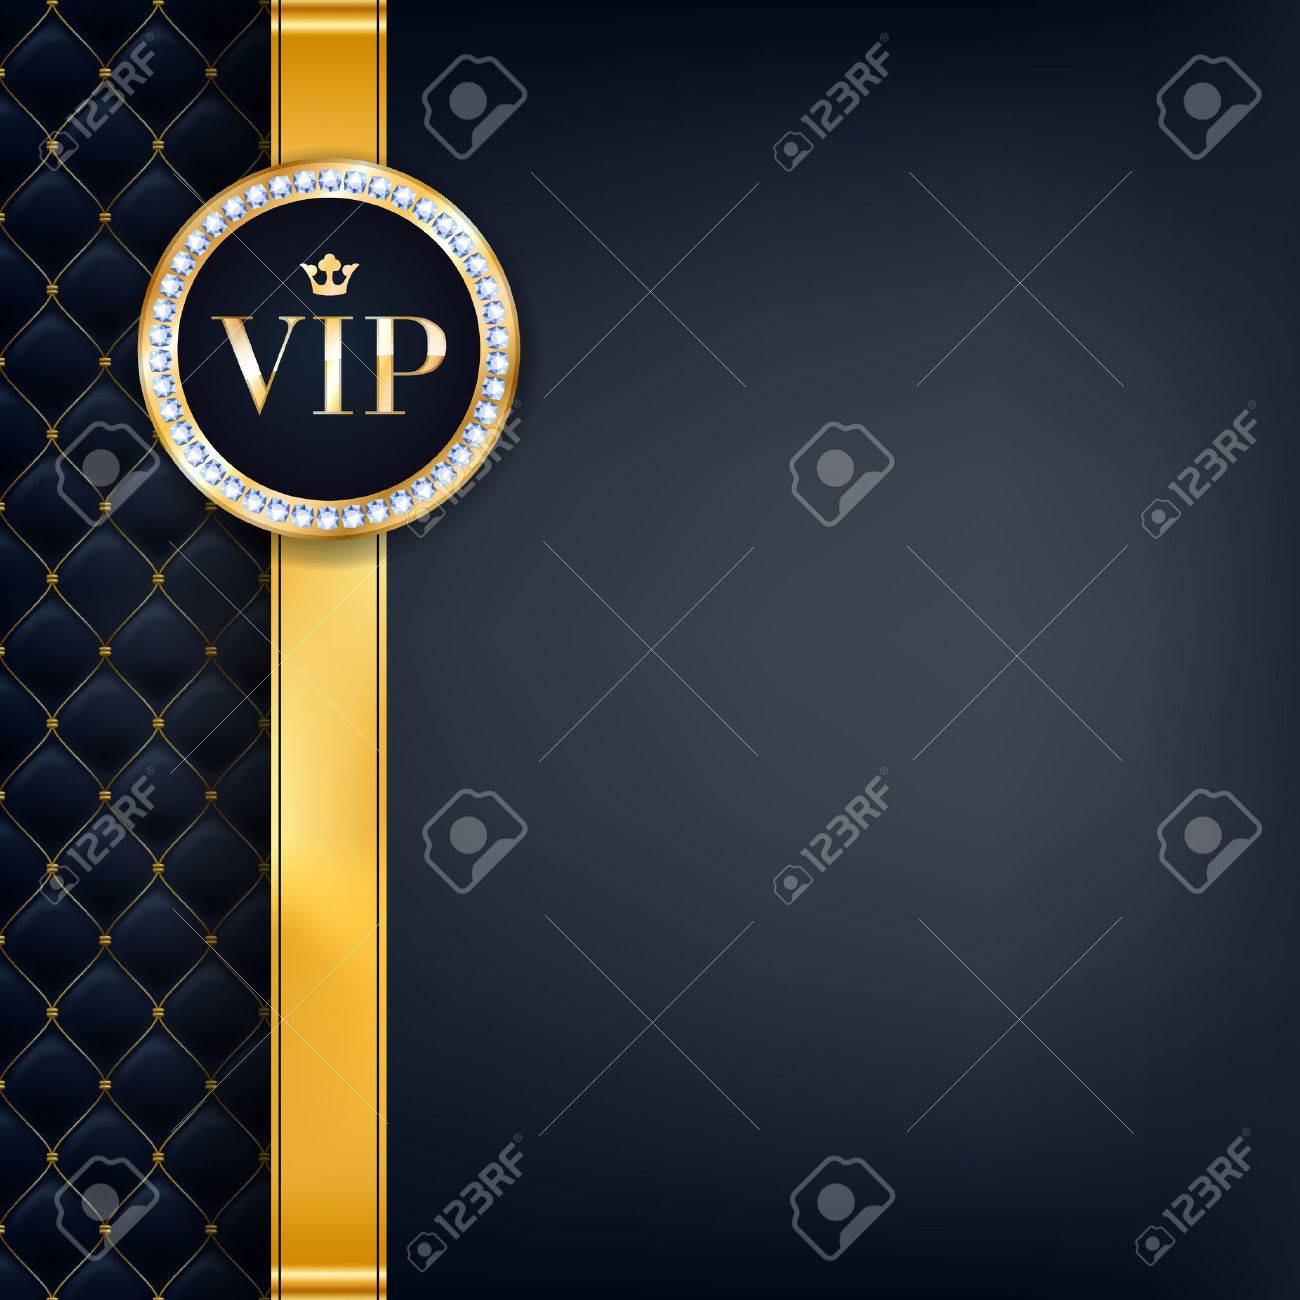 VIP party premium invitation card poster flyer. Black and golden design template. Quilted pattern decorative background with gold ribbon and round badge. - 68712407